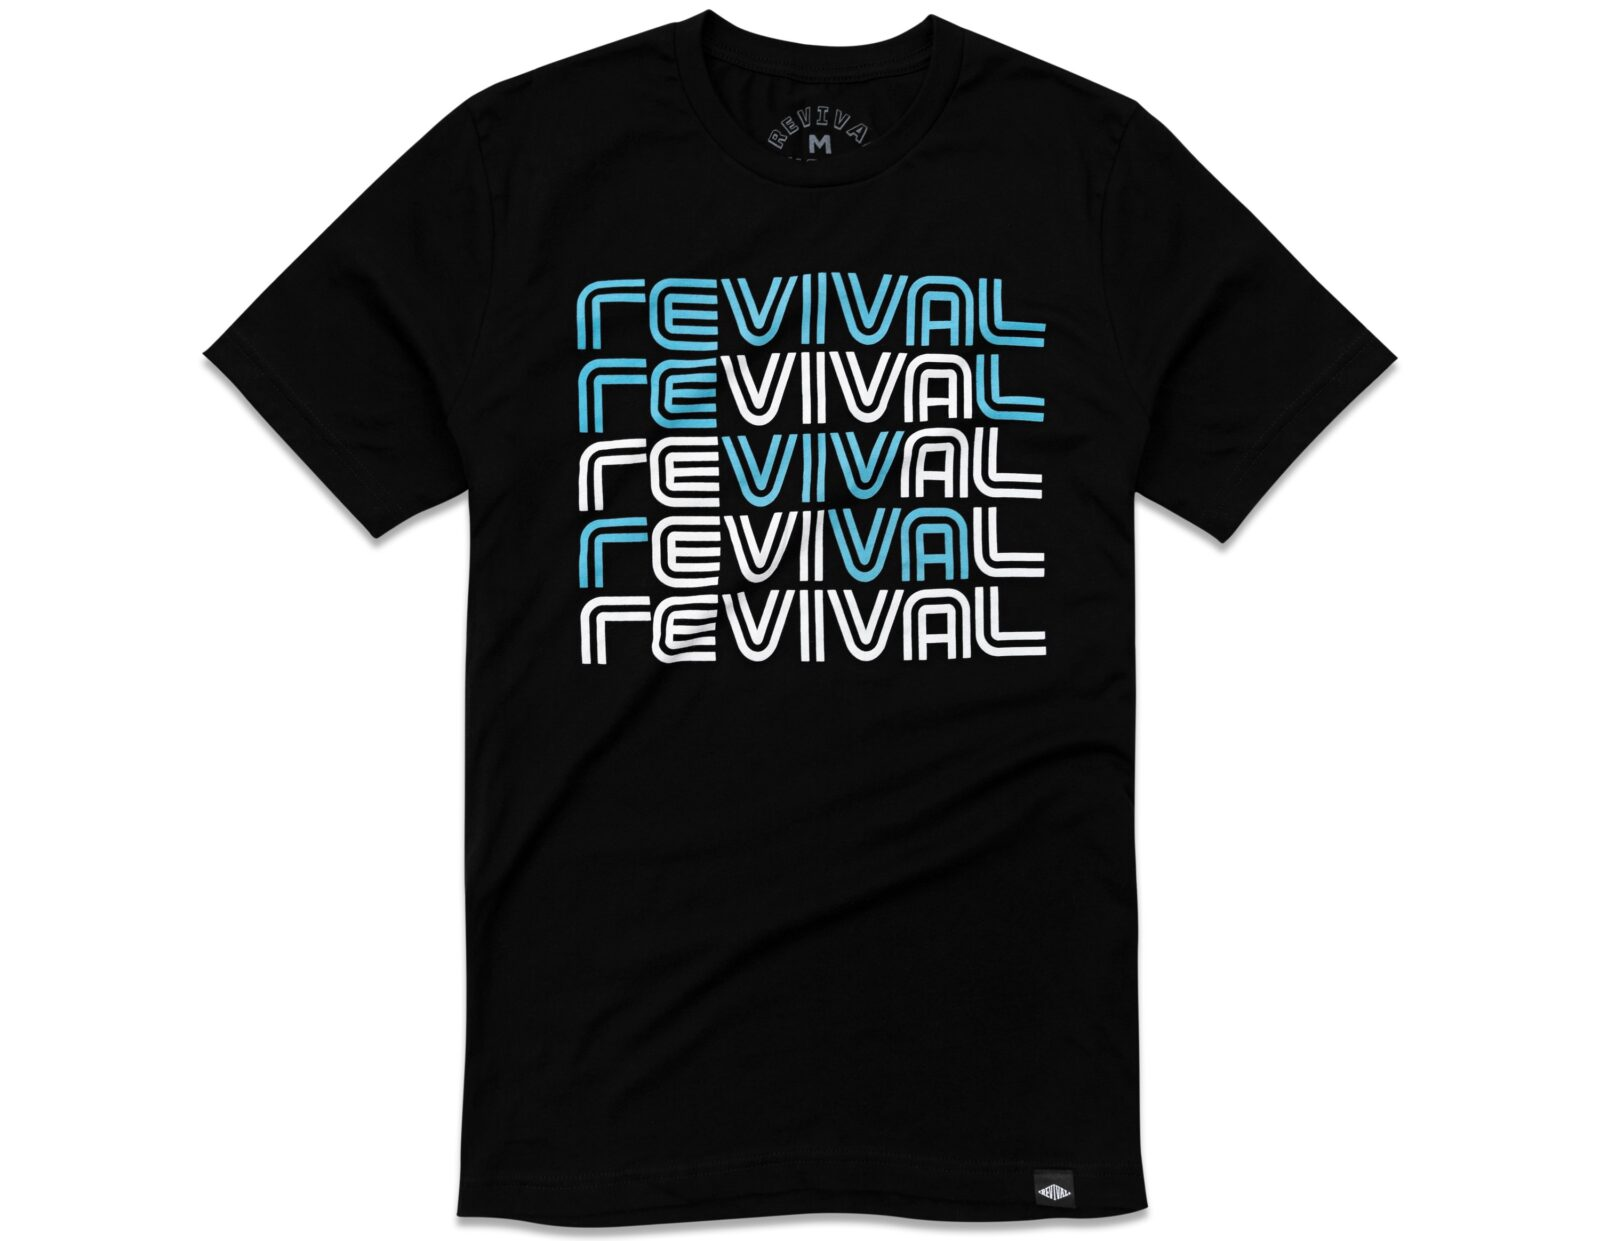 Viva Real Evil T-Shirt By Revival Cycles